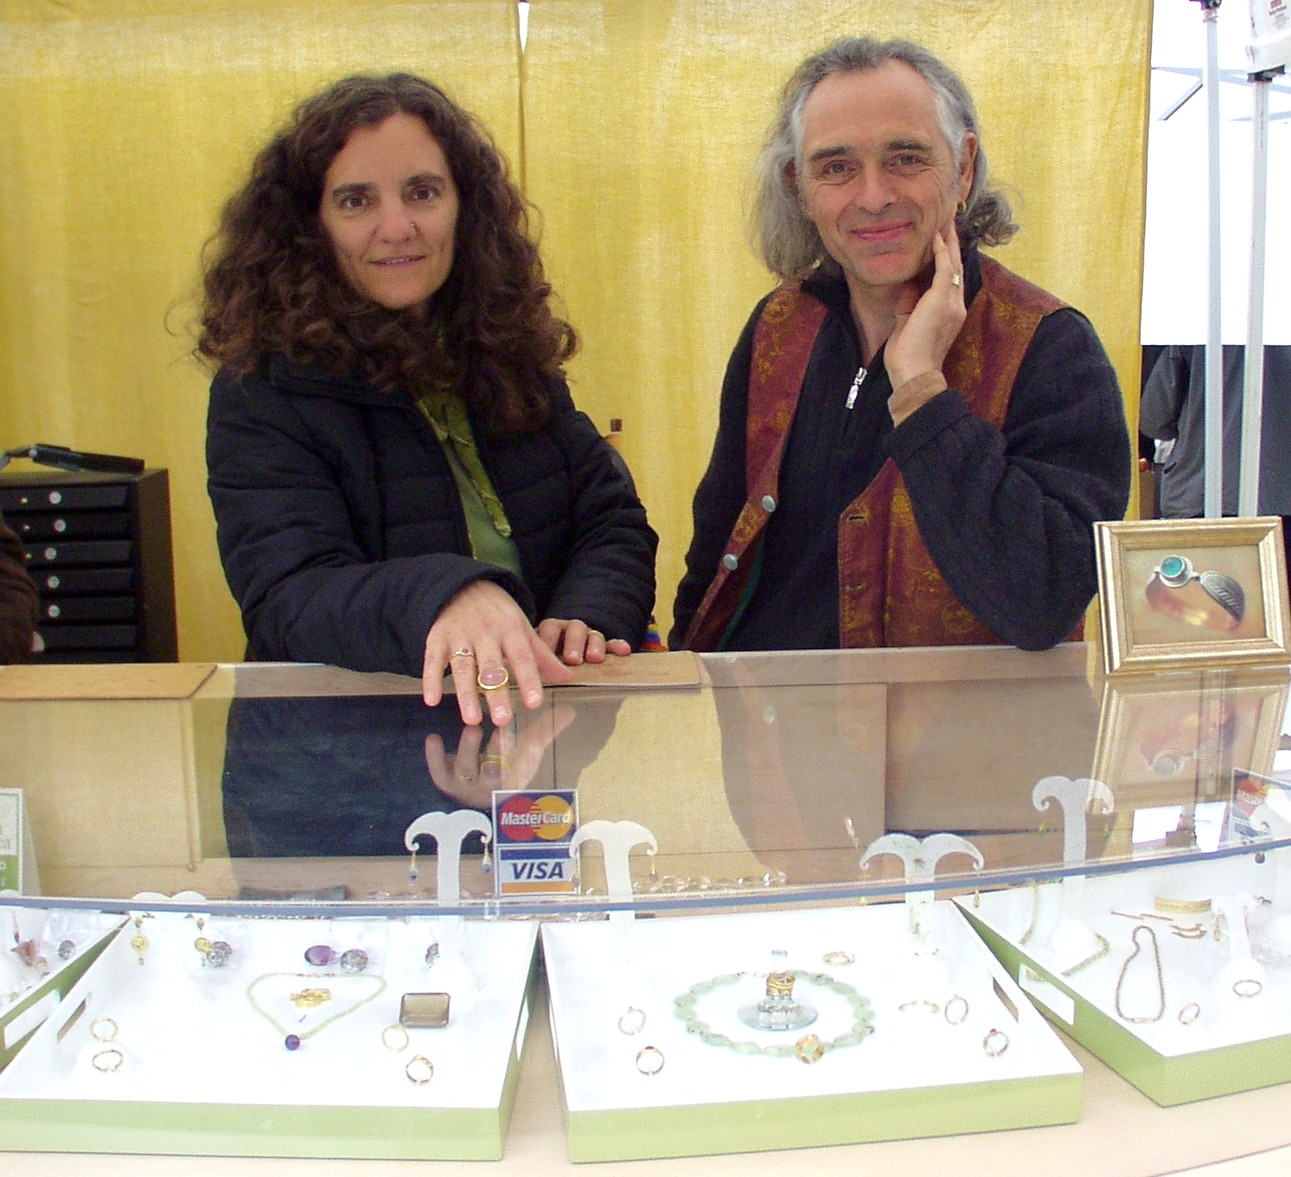 Tom Lambert, right, and Sheryl Morgenstern, of Itali Lambertini jewerly. Photo copyright 2009 by Zachary D. Lyons.